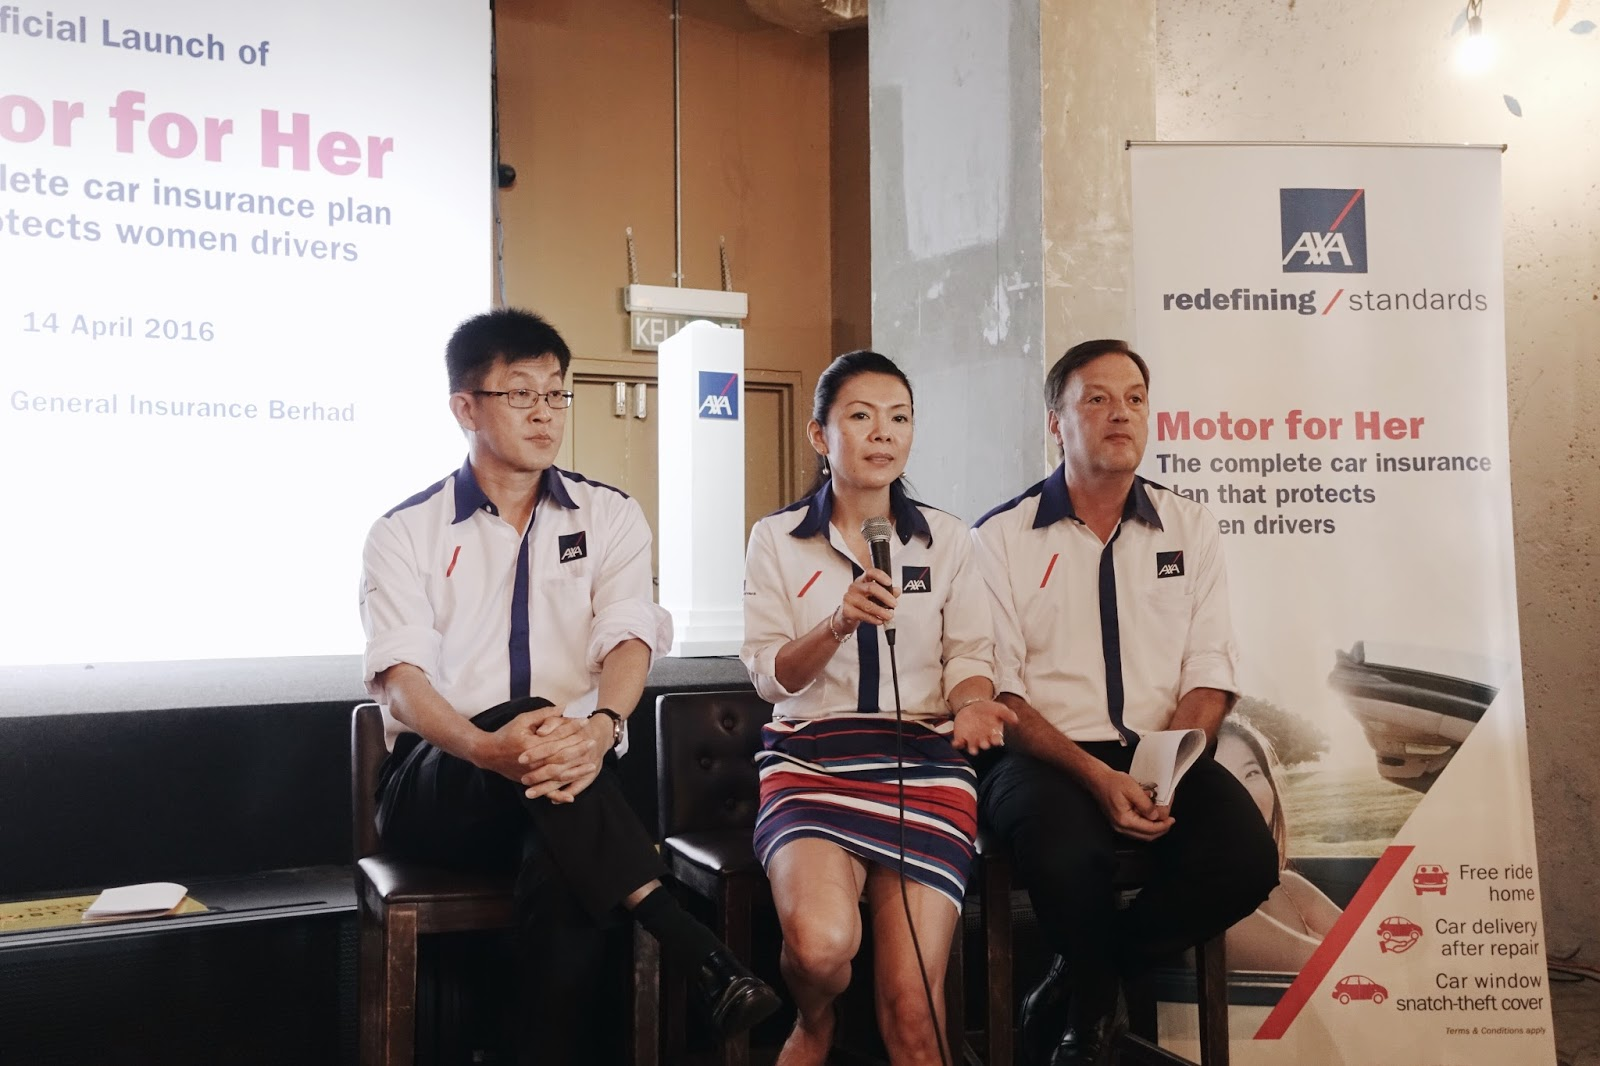 Axa Motor For Her First Insurance For Women Drivers A